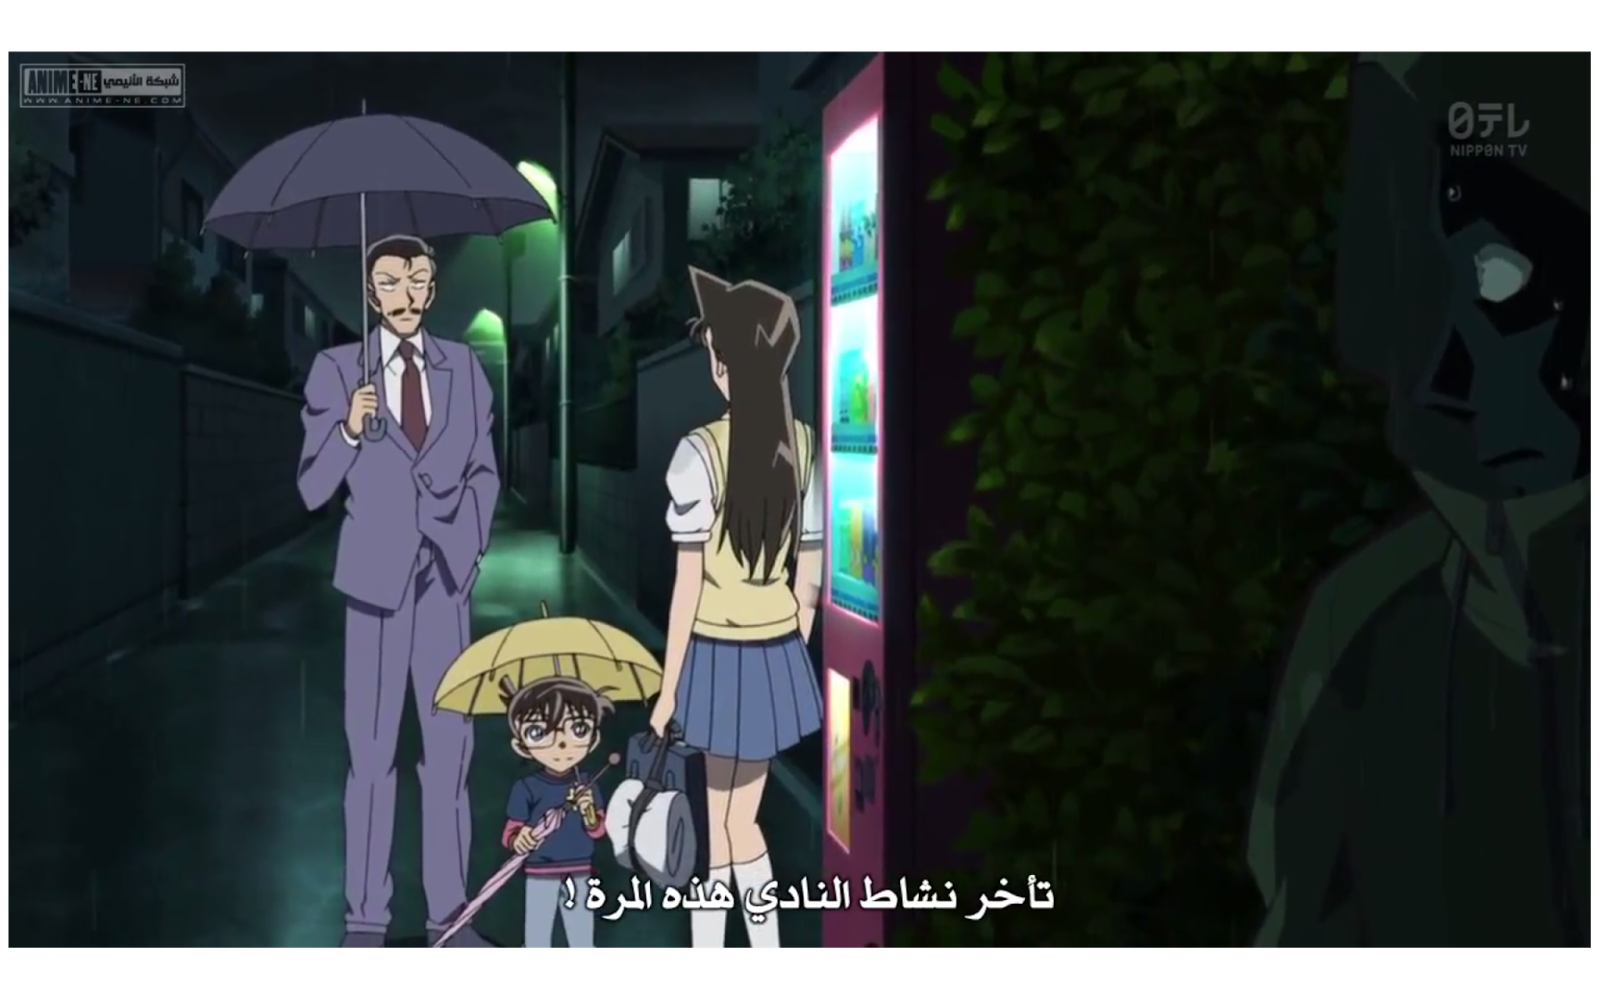 Detective conan episode 1 arabic : Movies showtimes webster